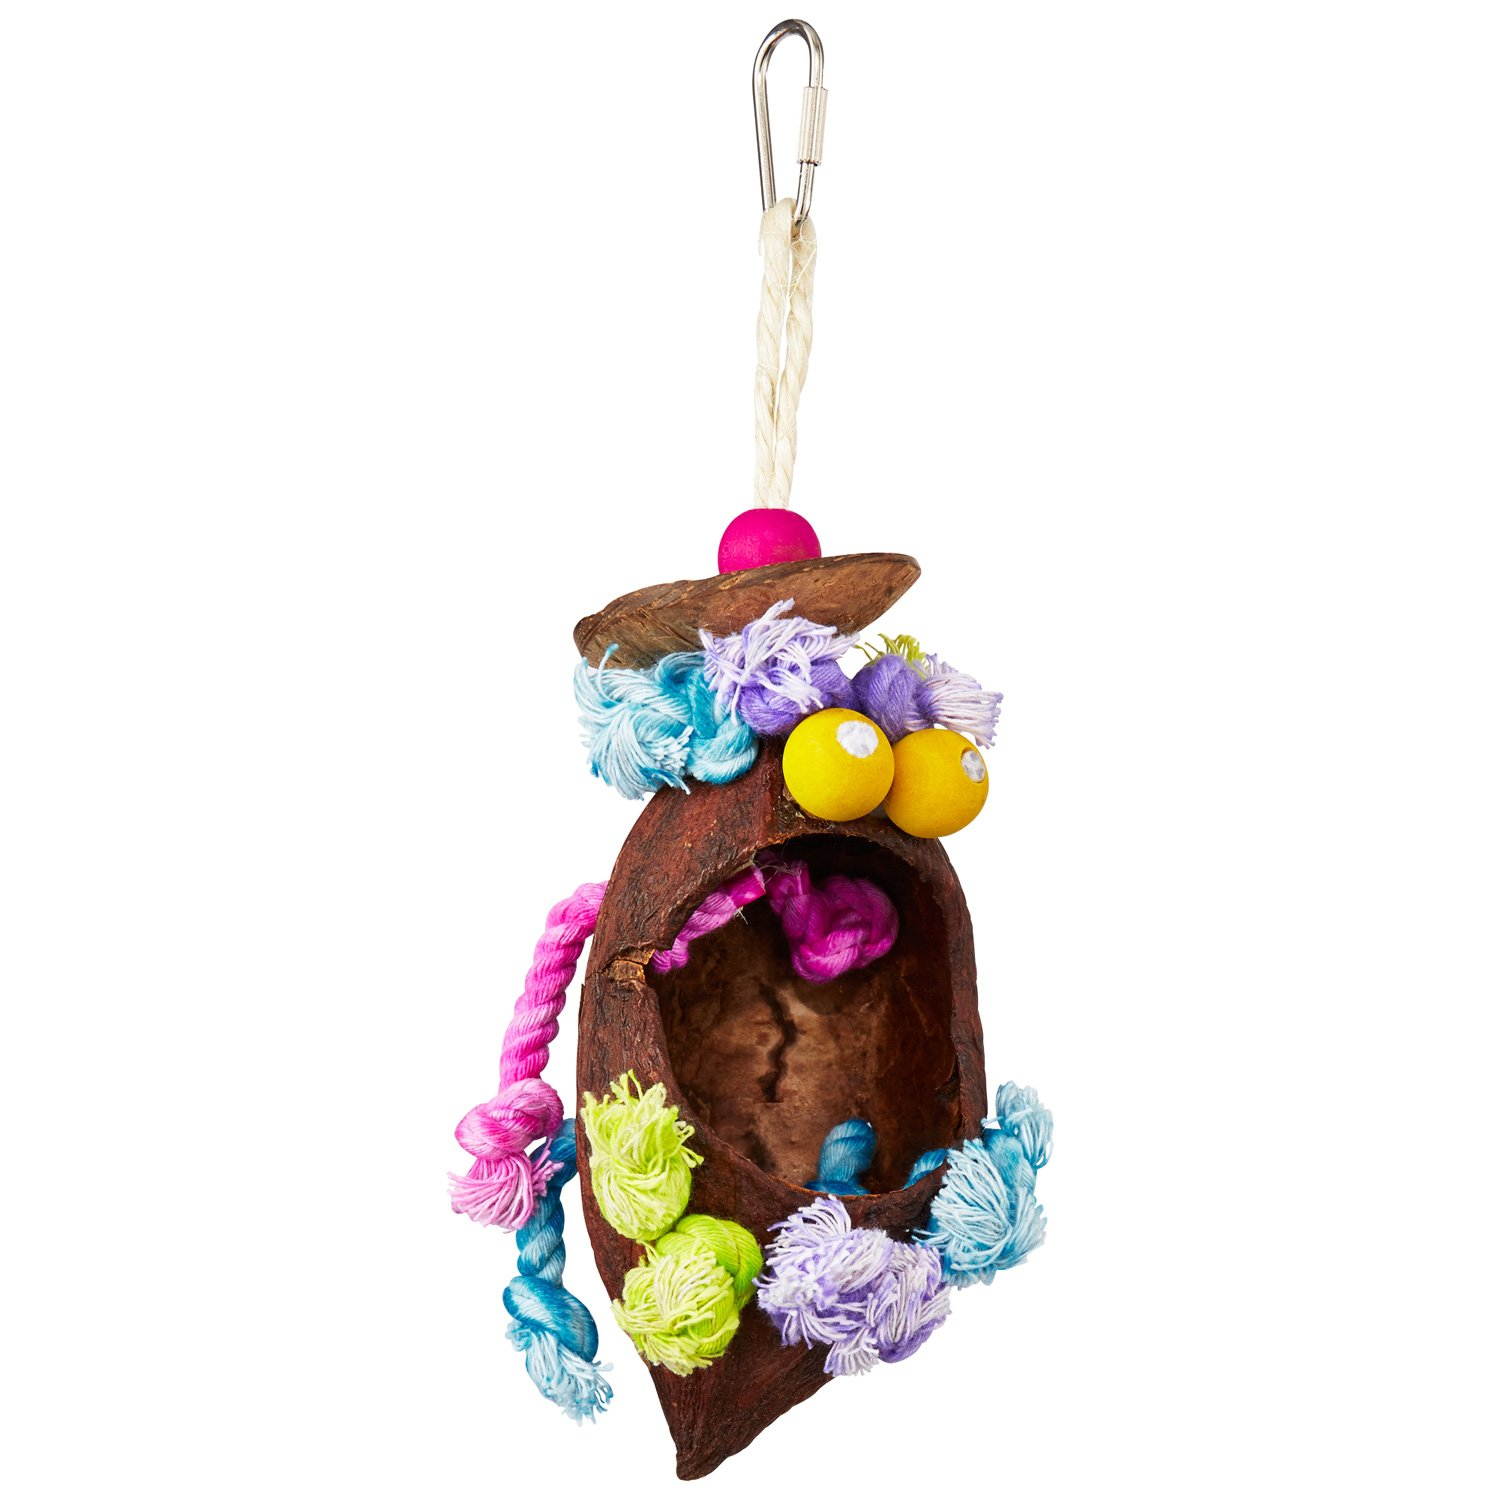 Prevue Hendryx Tropical Teasers Coconut Bird Toy